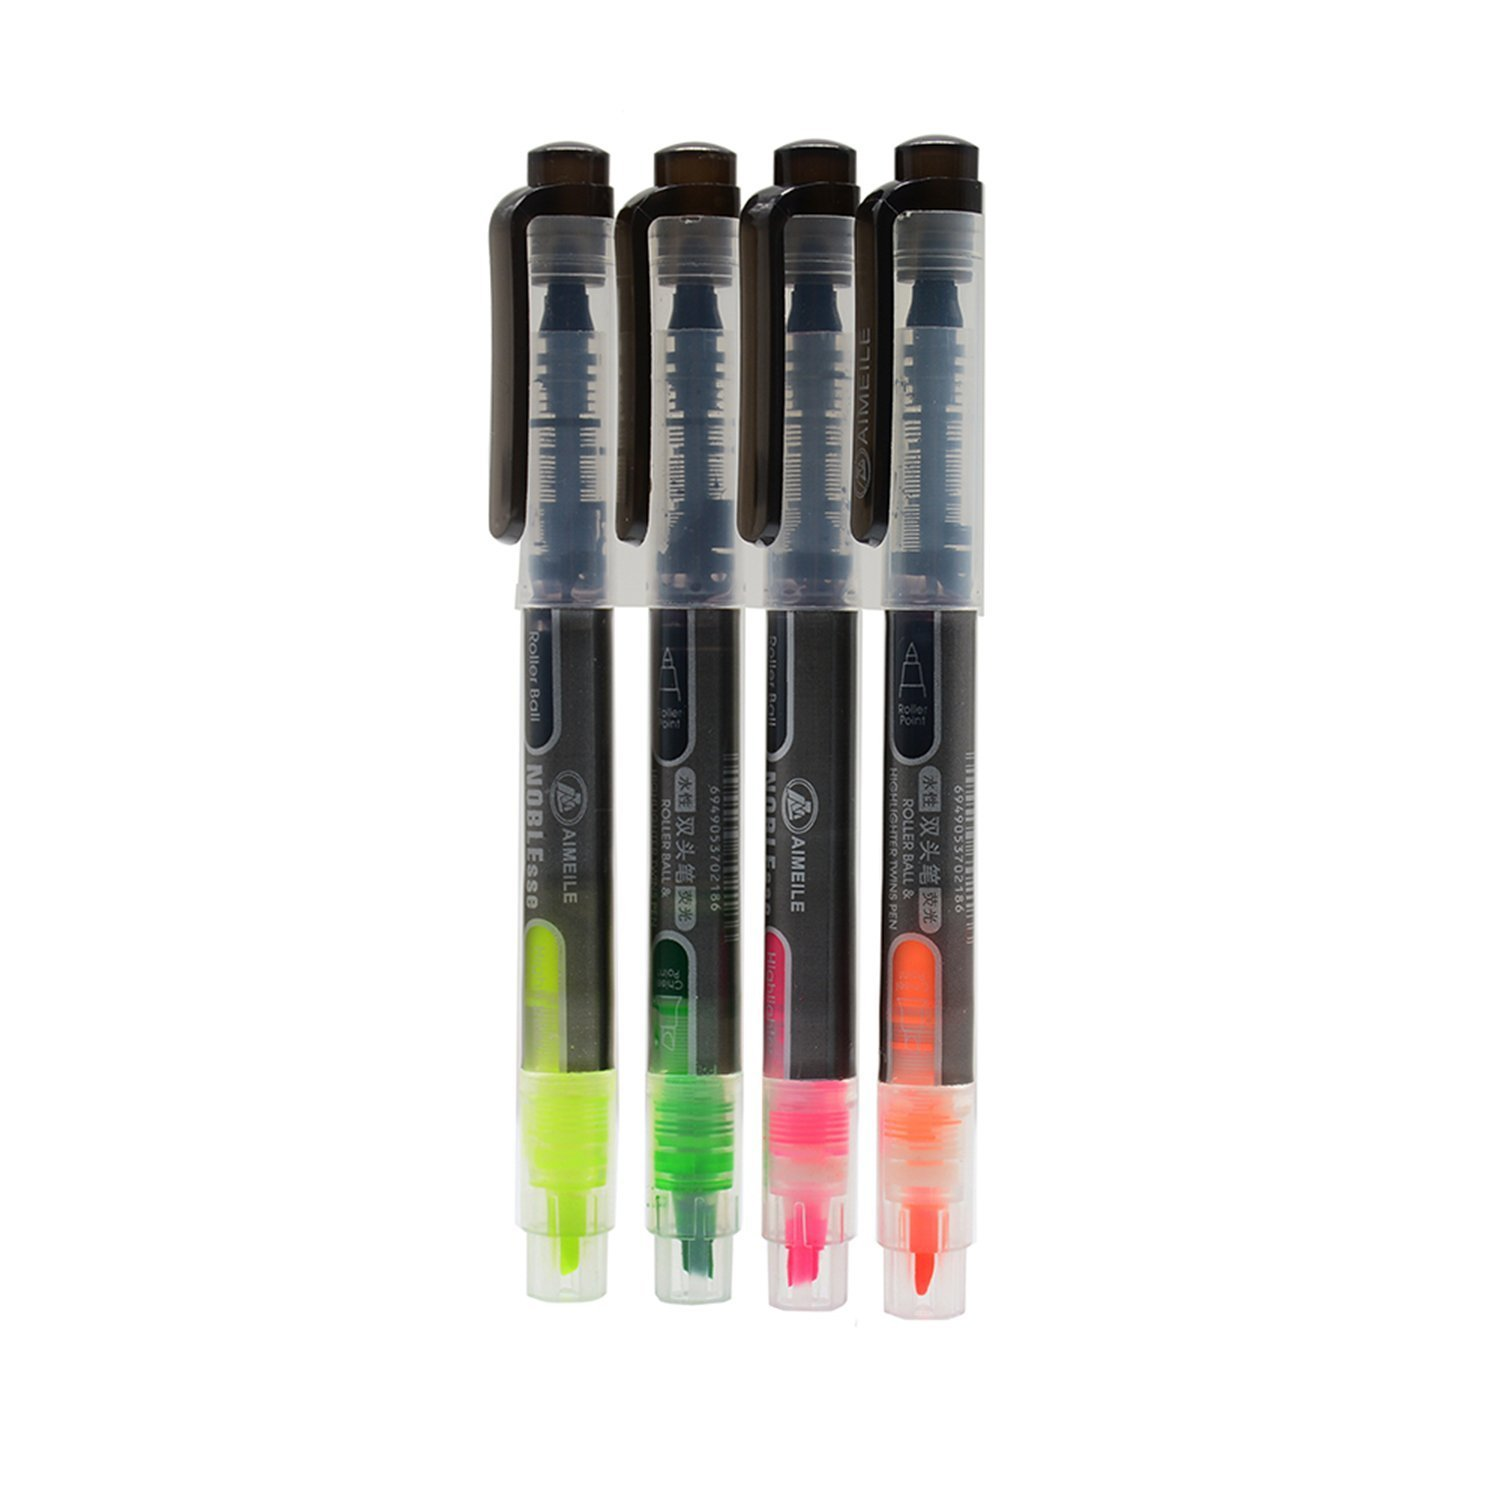 4 PCS Double-headed Multifunctional Pen included Roller Ball Pen and Highlighter 4 Colors